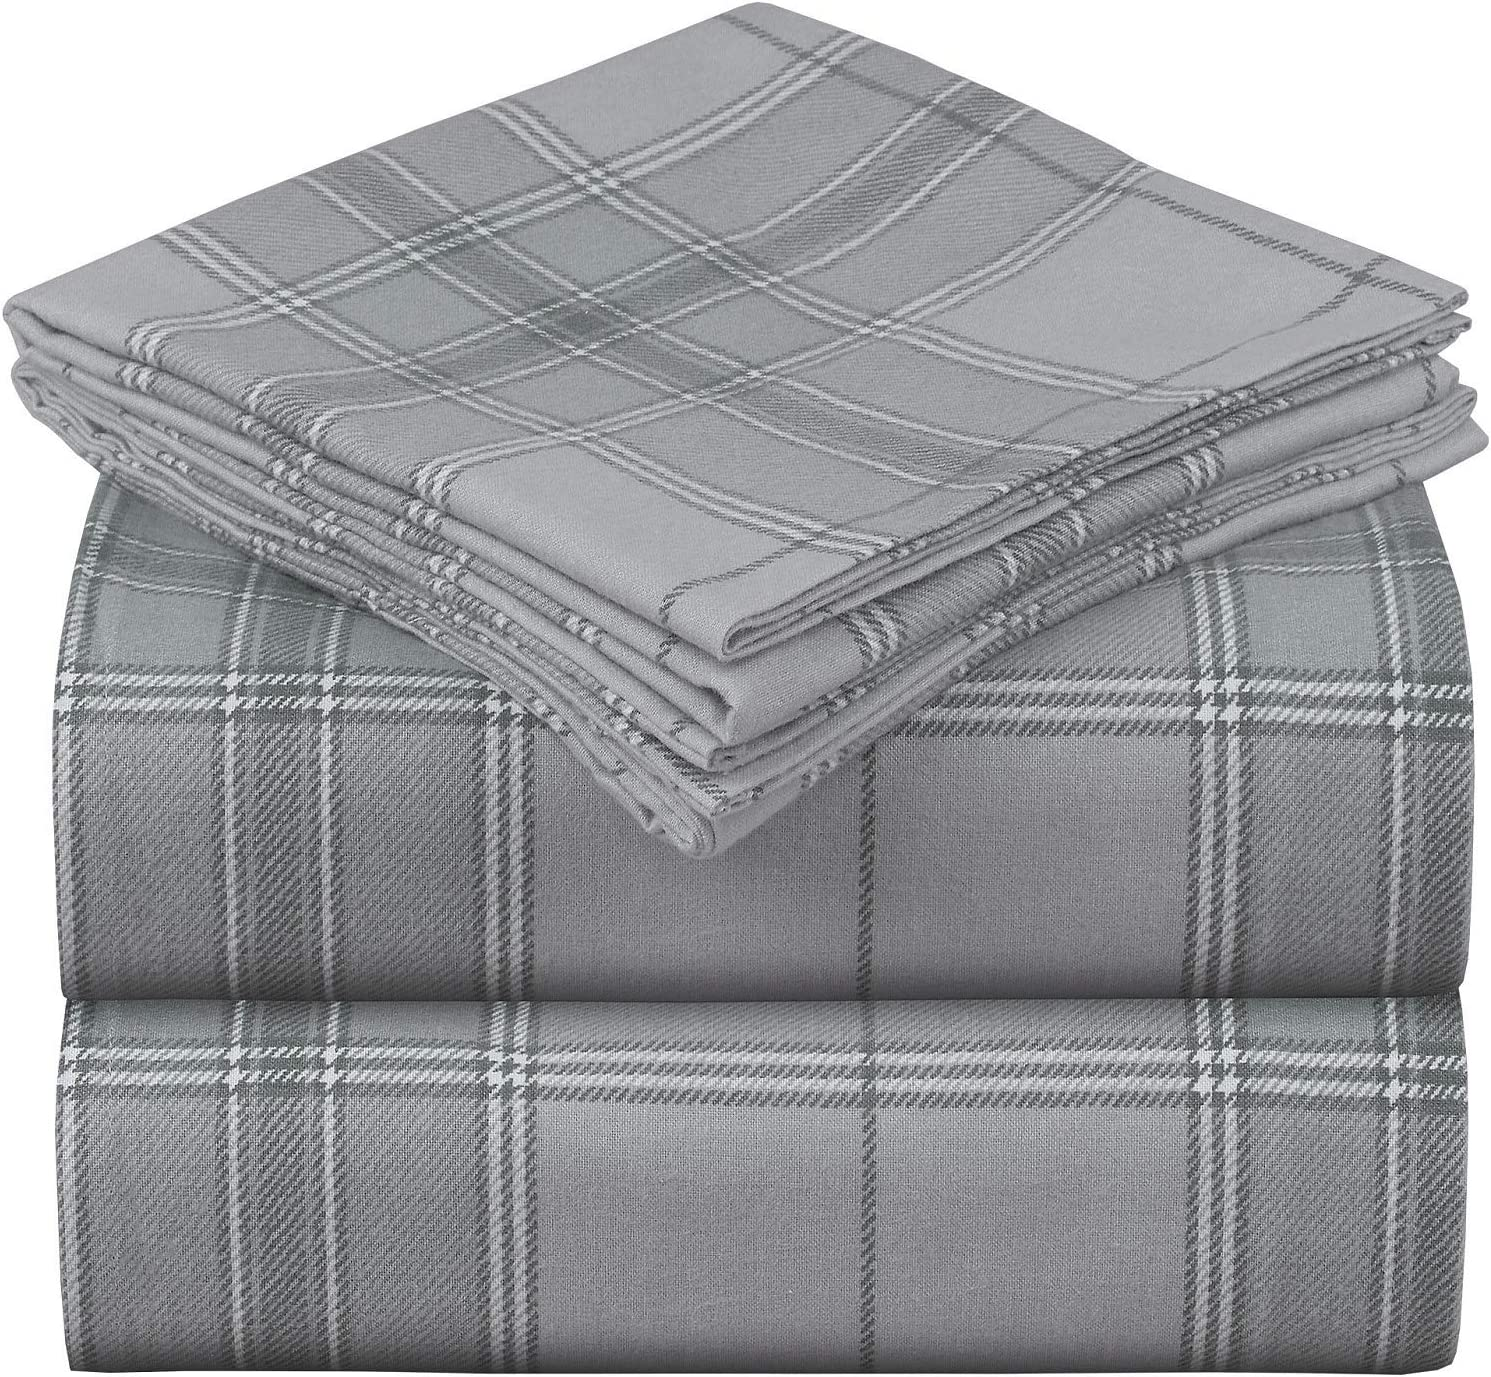 Mellanni 100% Organic Cotton Flannel Sheet Set - Heavyweight 180GSM 4 pc Printed Luxury Bed Sheets - Cozy, Soft, Warm, Breathable Bedding - Deep Pockets - All Around Elastic (Queen, Light Gray Plaid)